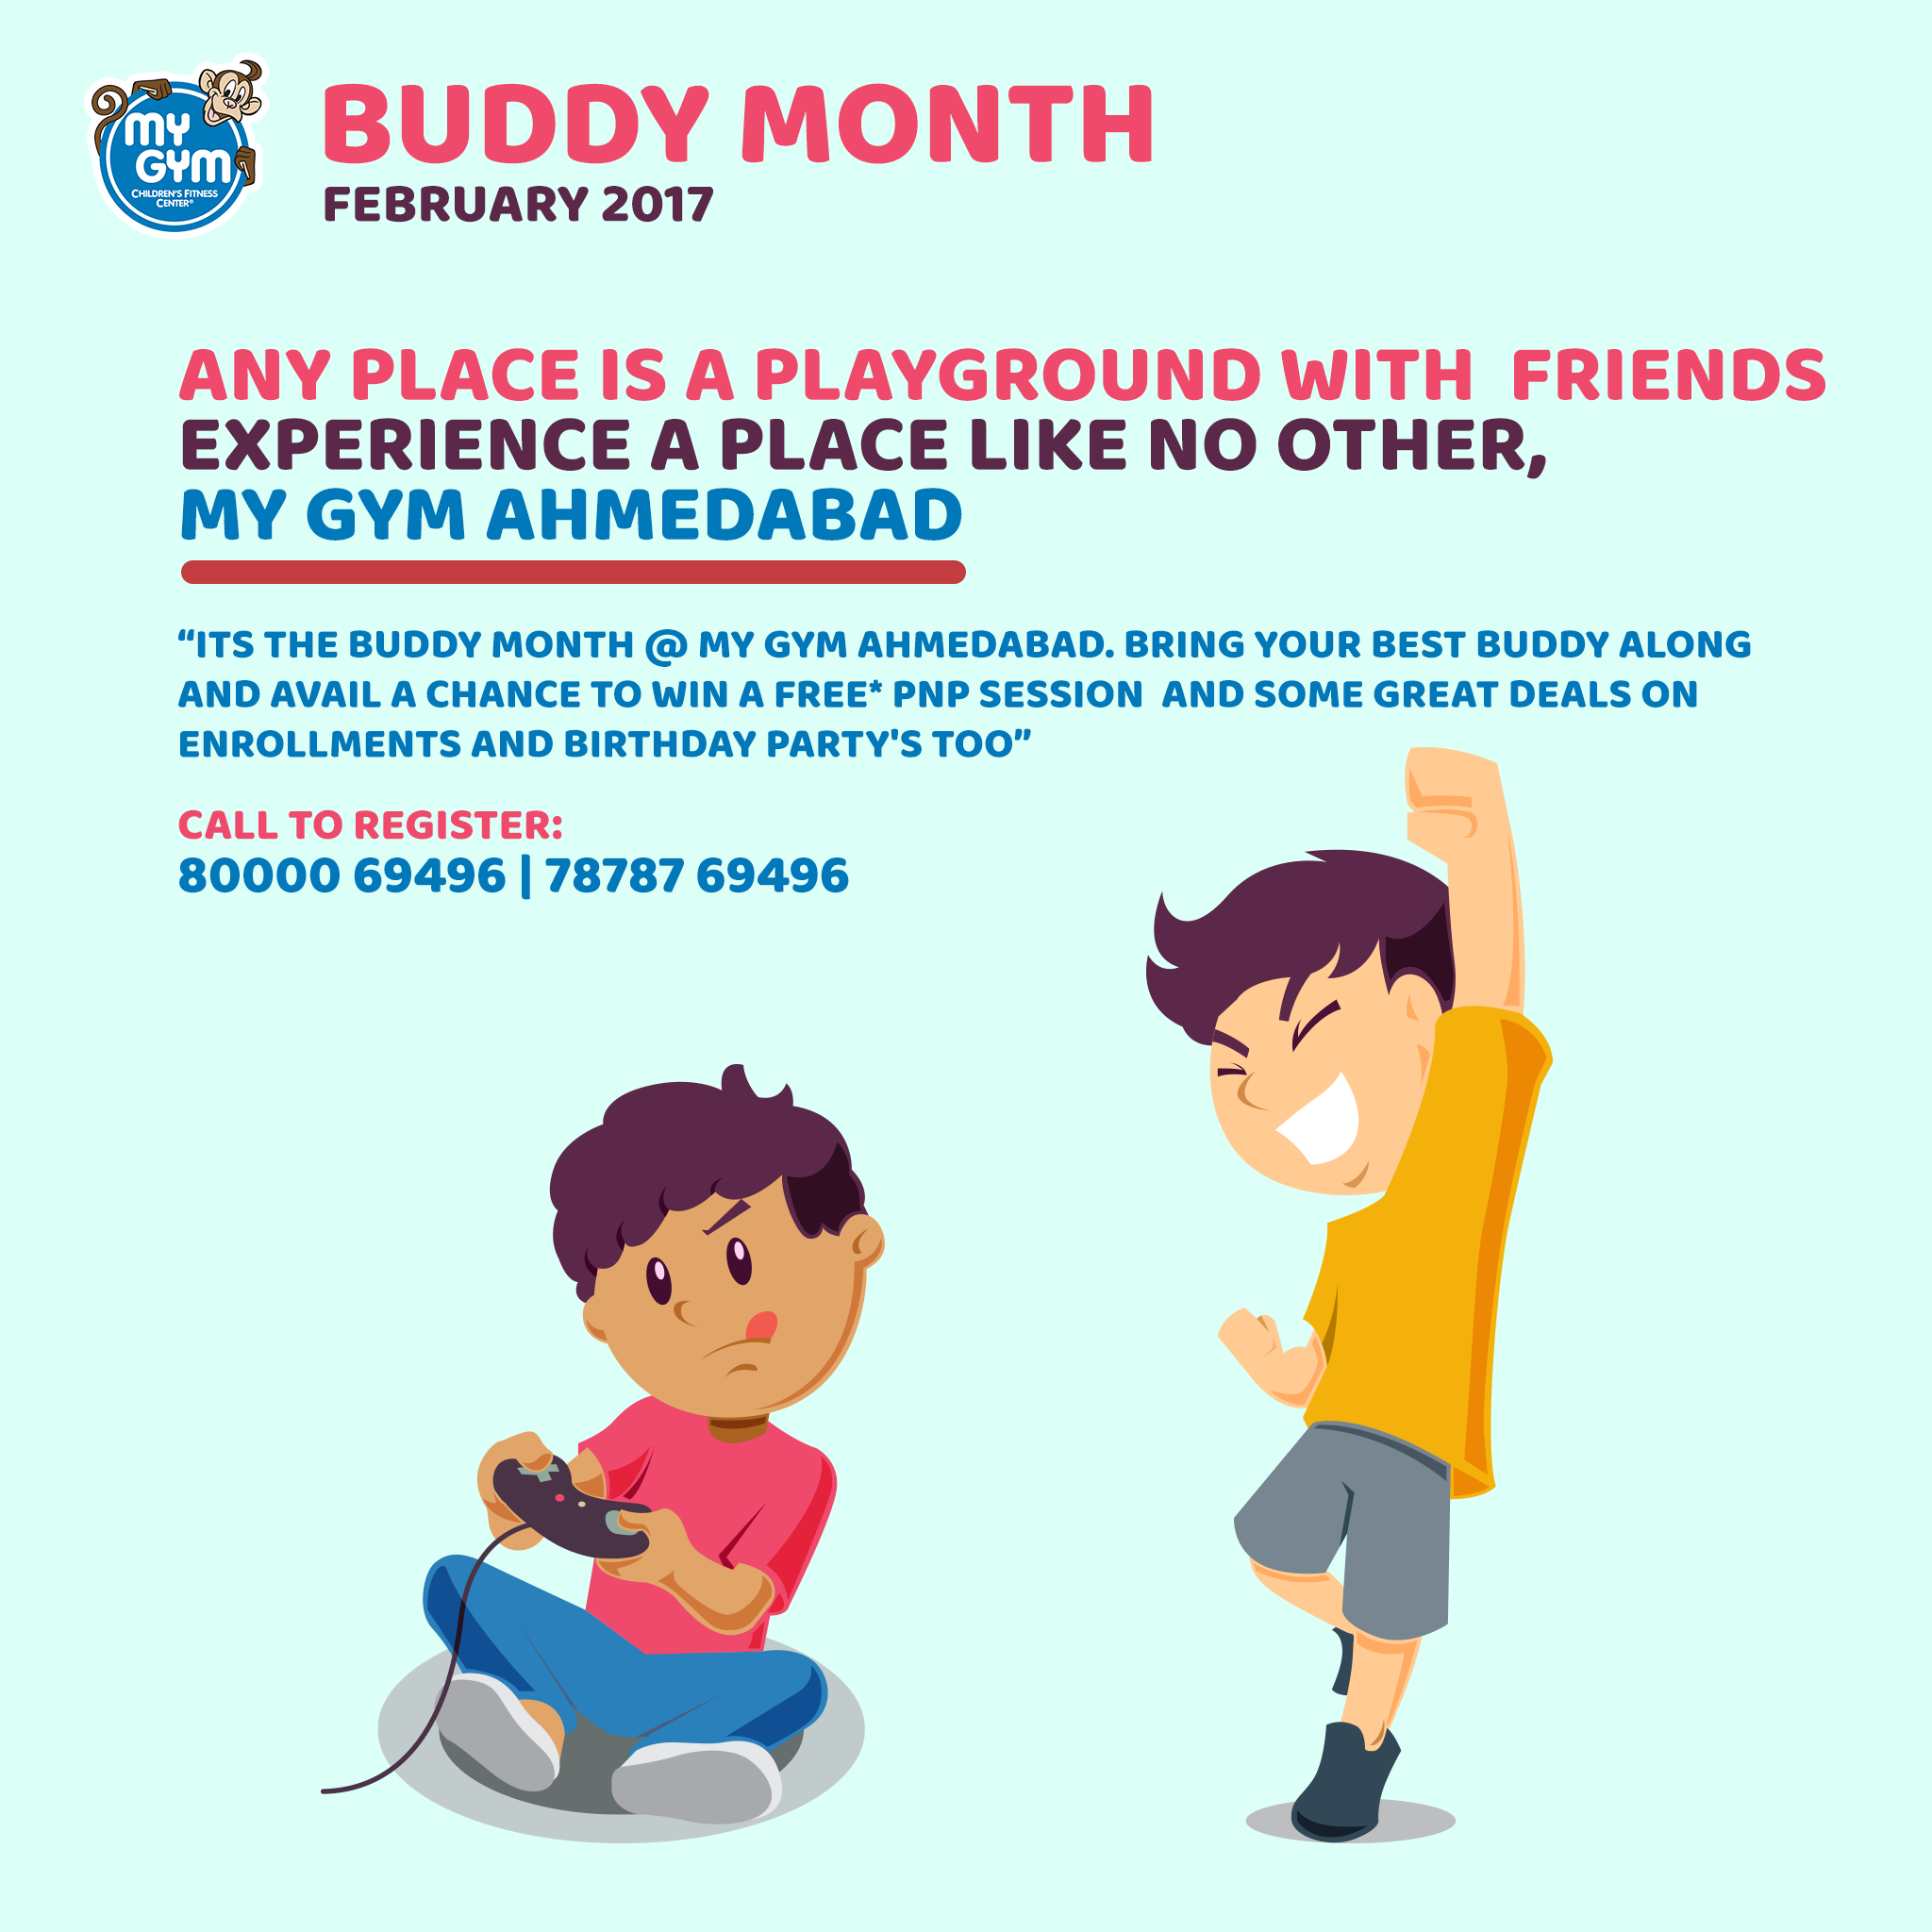 Buddy Month Starts At My Gym Come Along With Your Best Buddies And Get Great Offers Deals Also This Months Kids Can Dress Up In